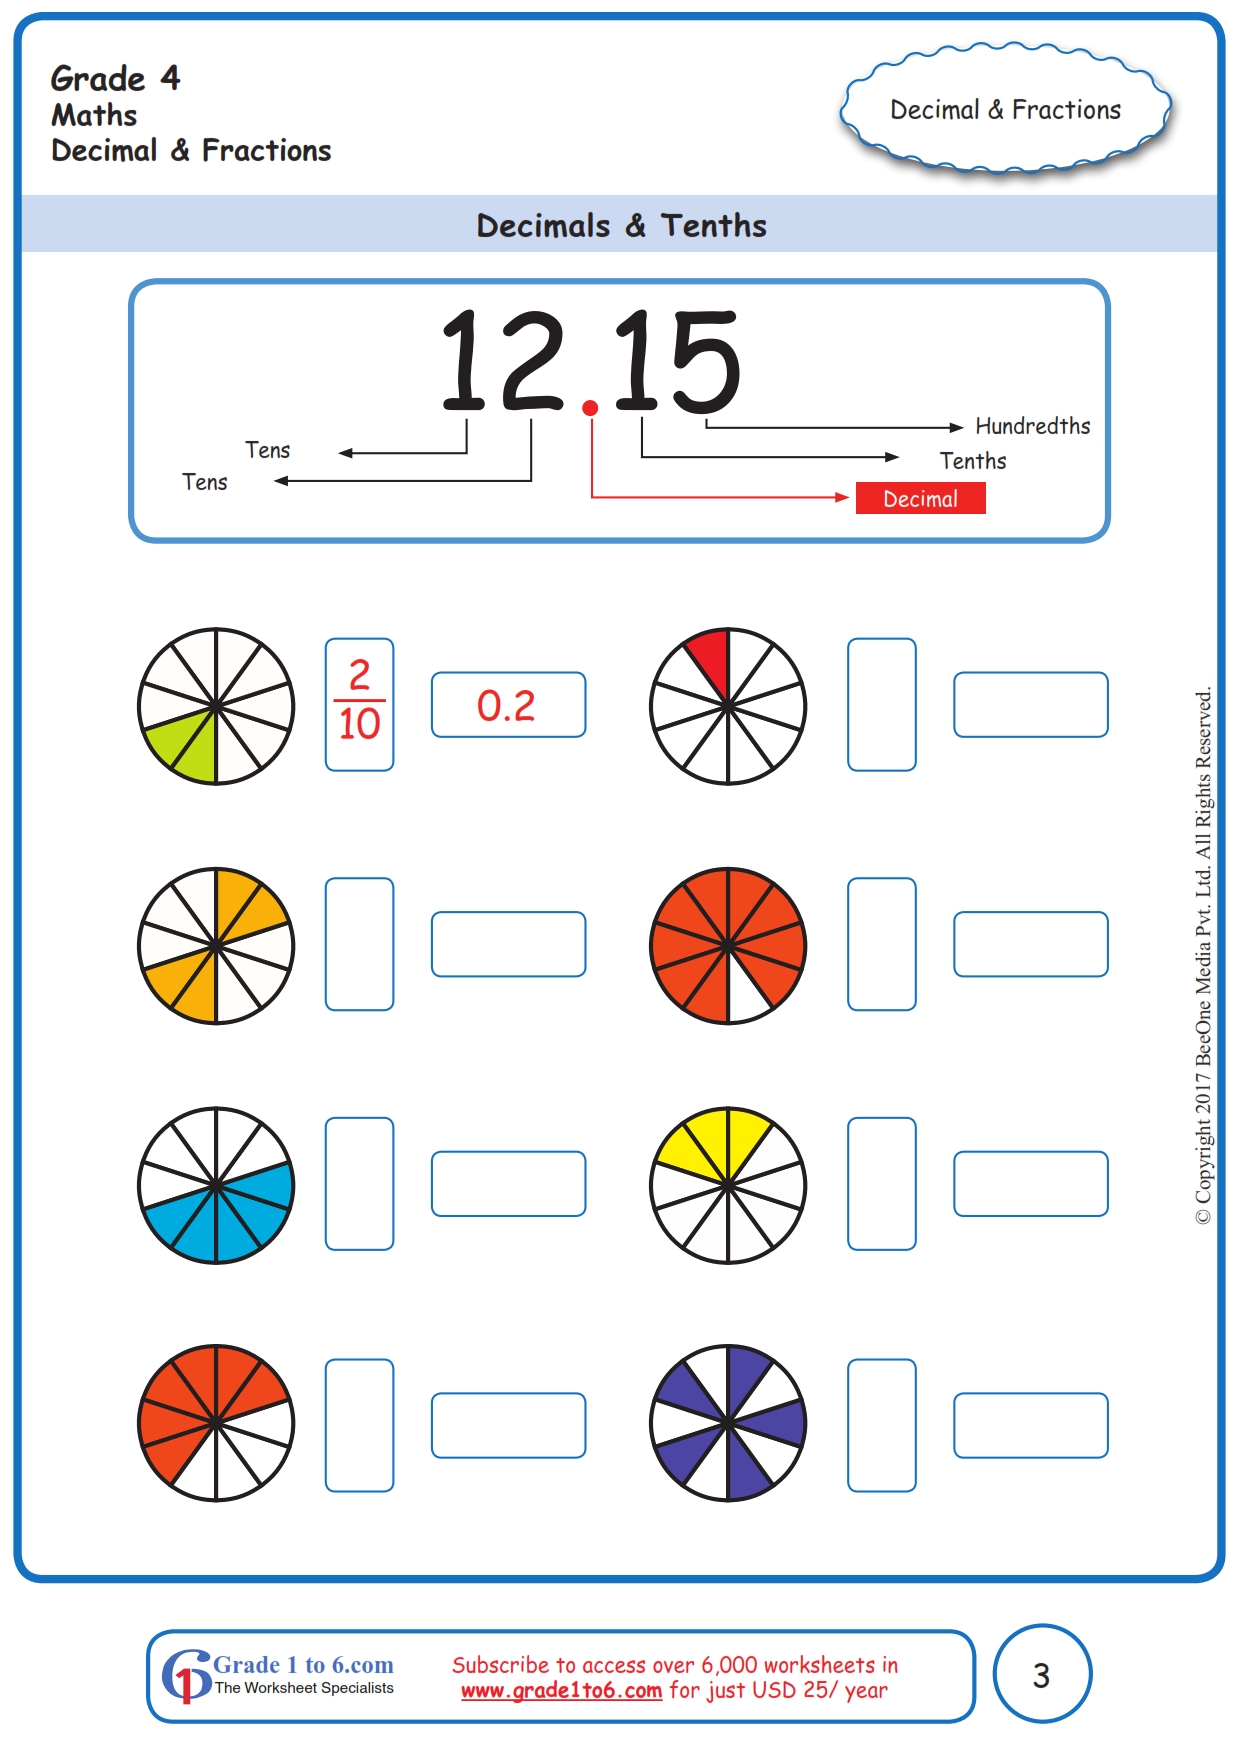 hight resolution of Grade 4 Decimals Worksheets www.grade1to6.com